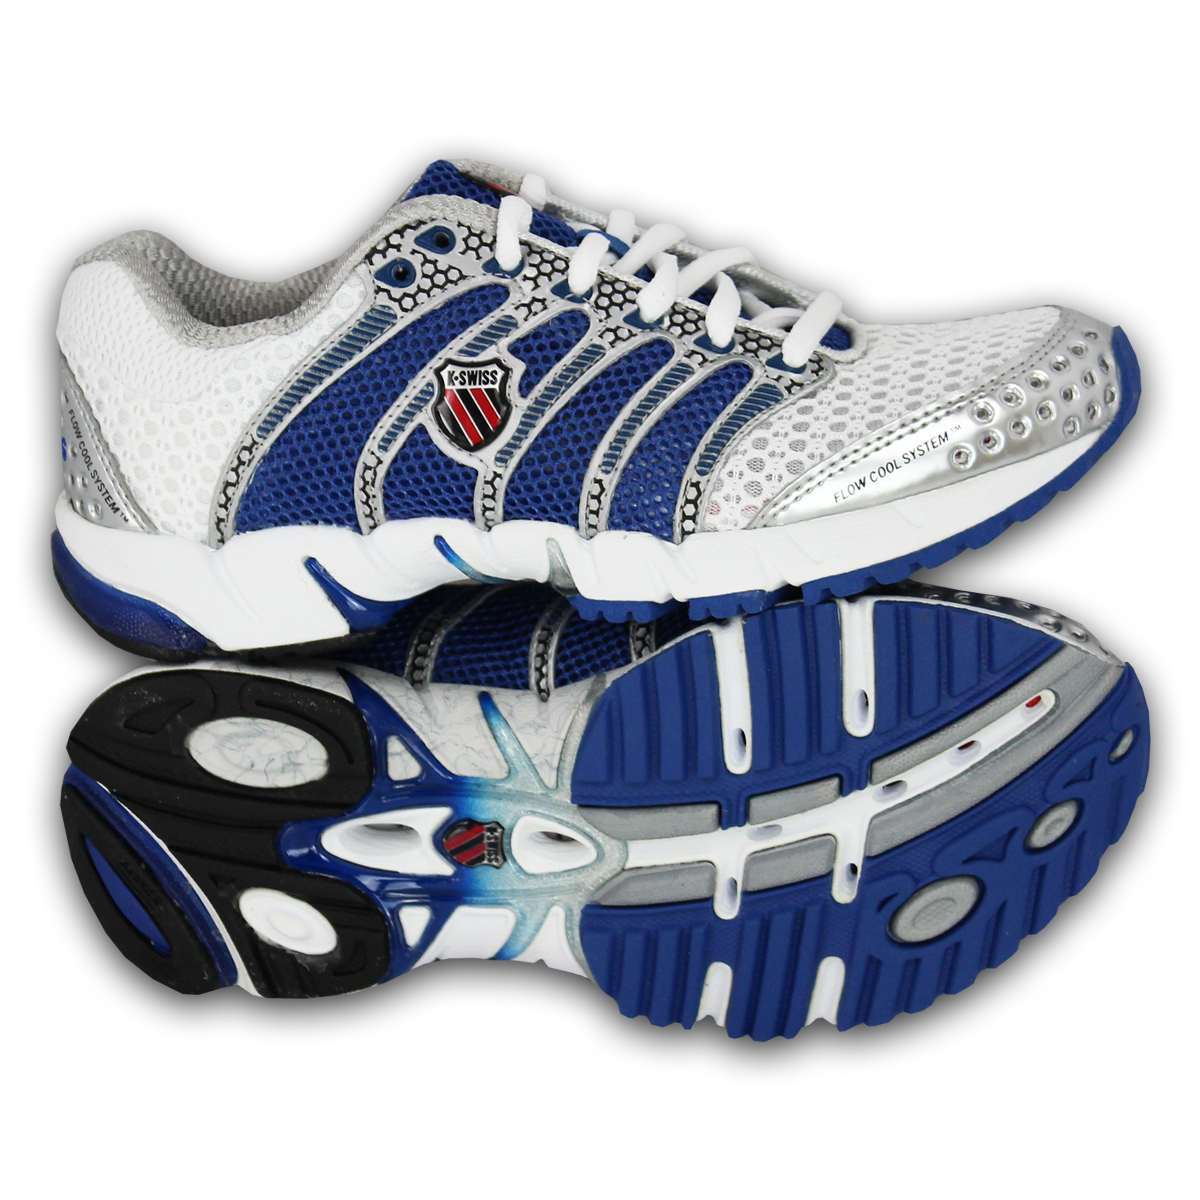 Trainers Shoes Up blue 92243163 Ladies White Swiss Designer Jogging K Womens Running Lace OSqqdw4x